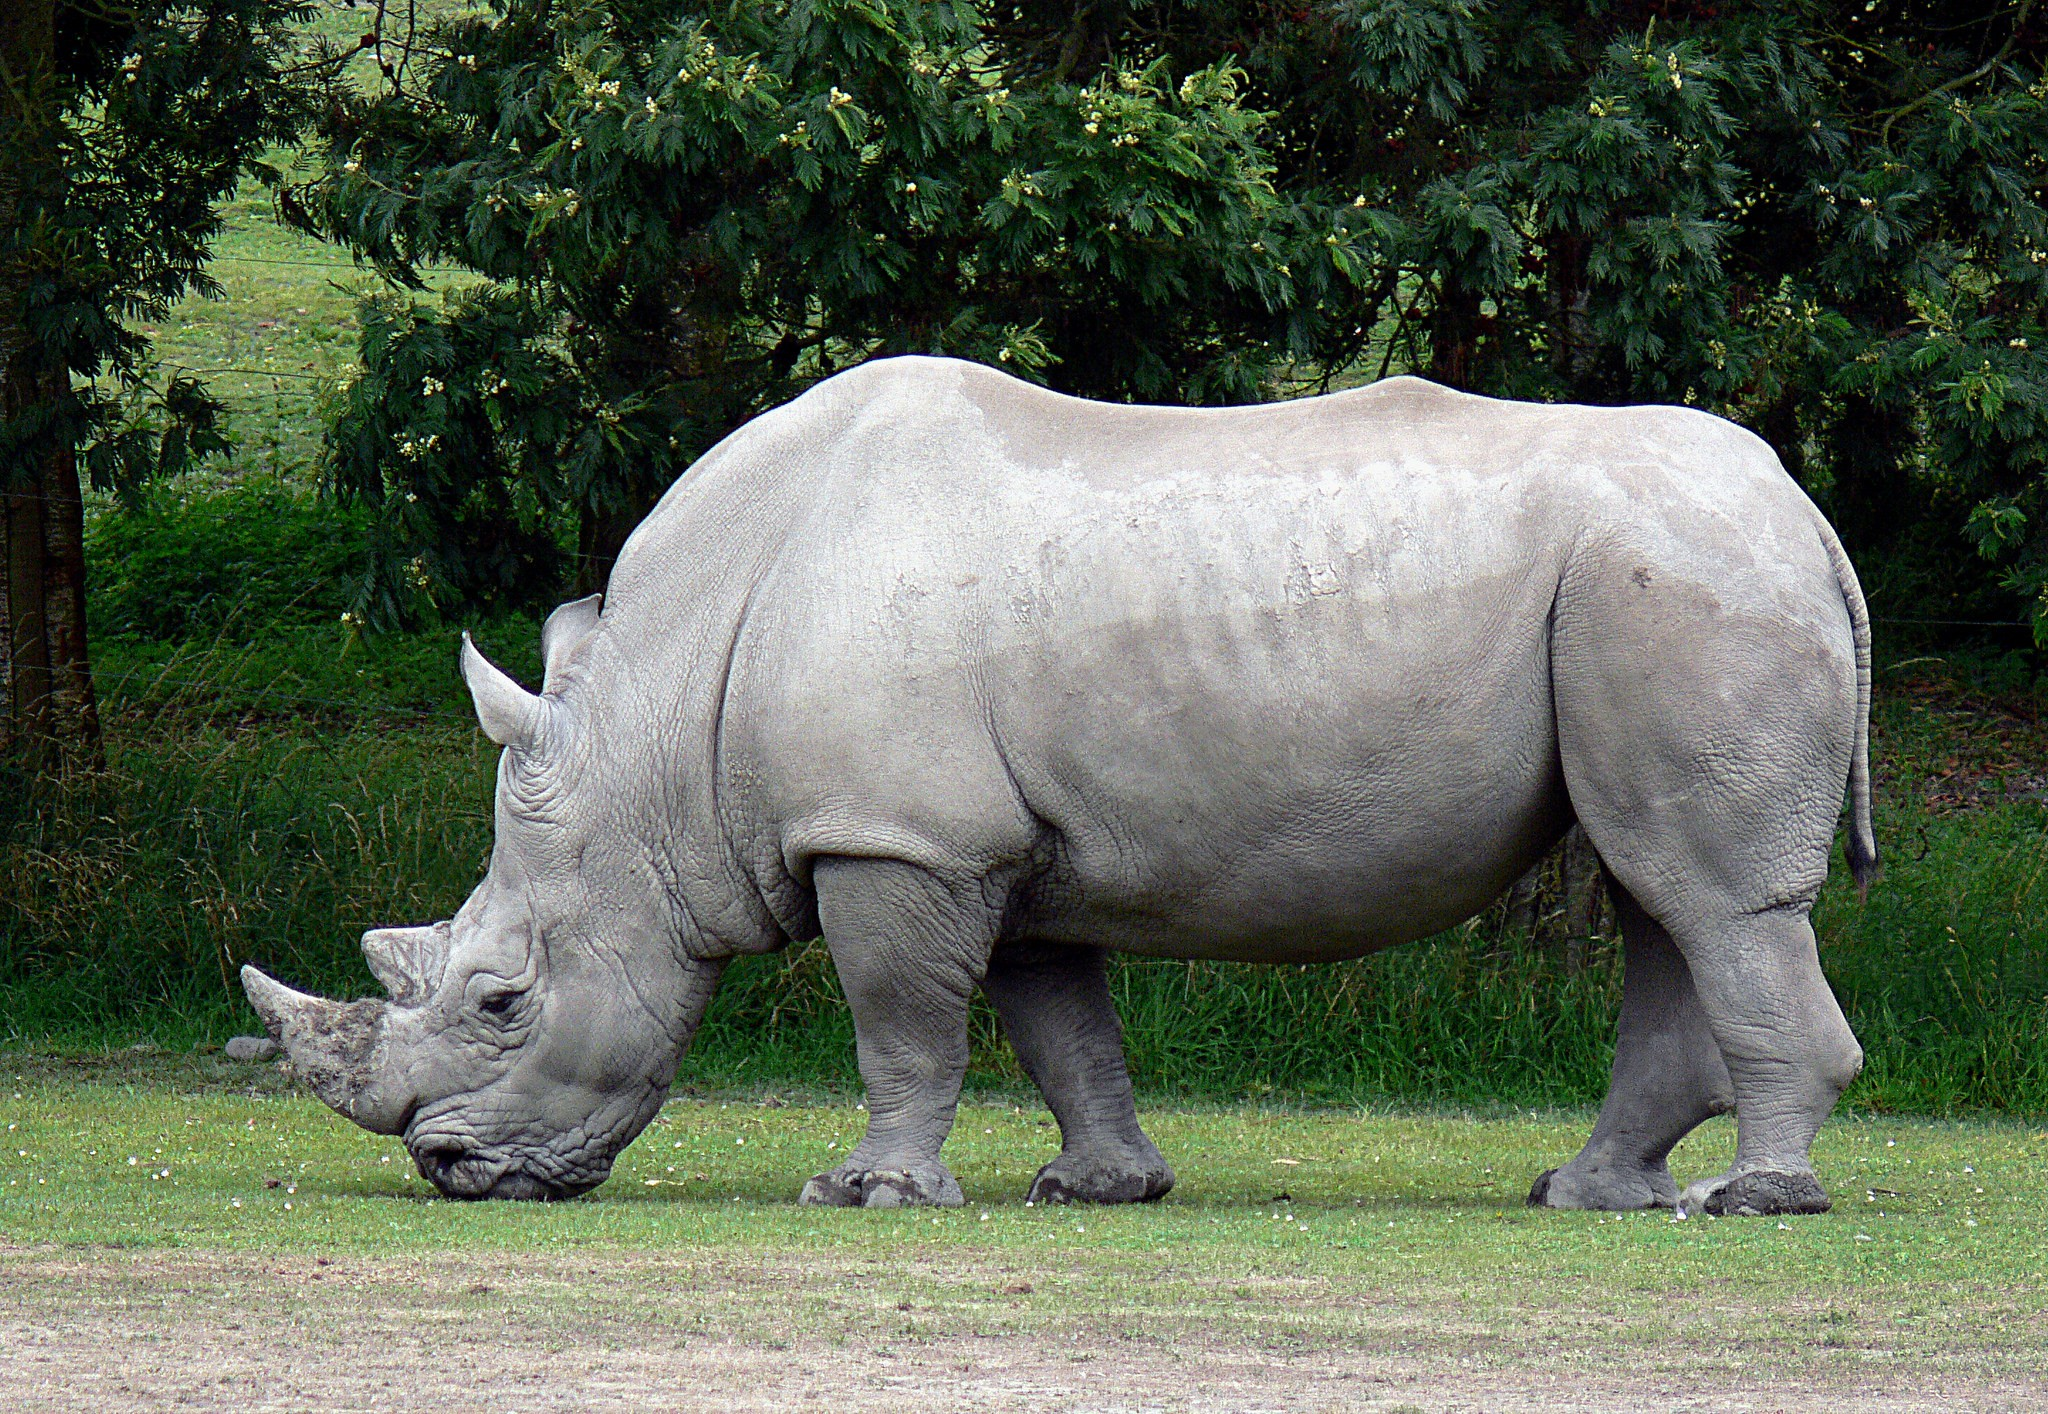 Rinoceronte branco (Ceratotherium simum) (Foto: Flickr/IIP Photo Archive/Creative Commons)